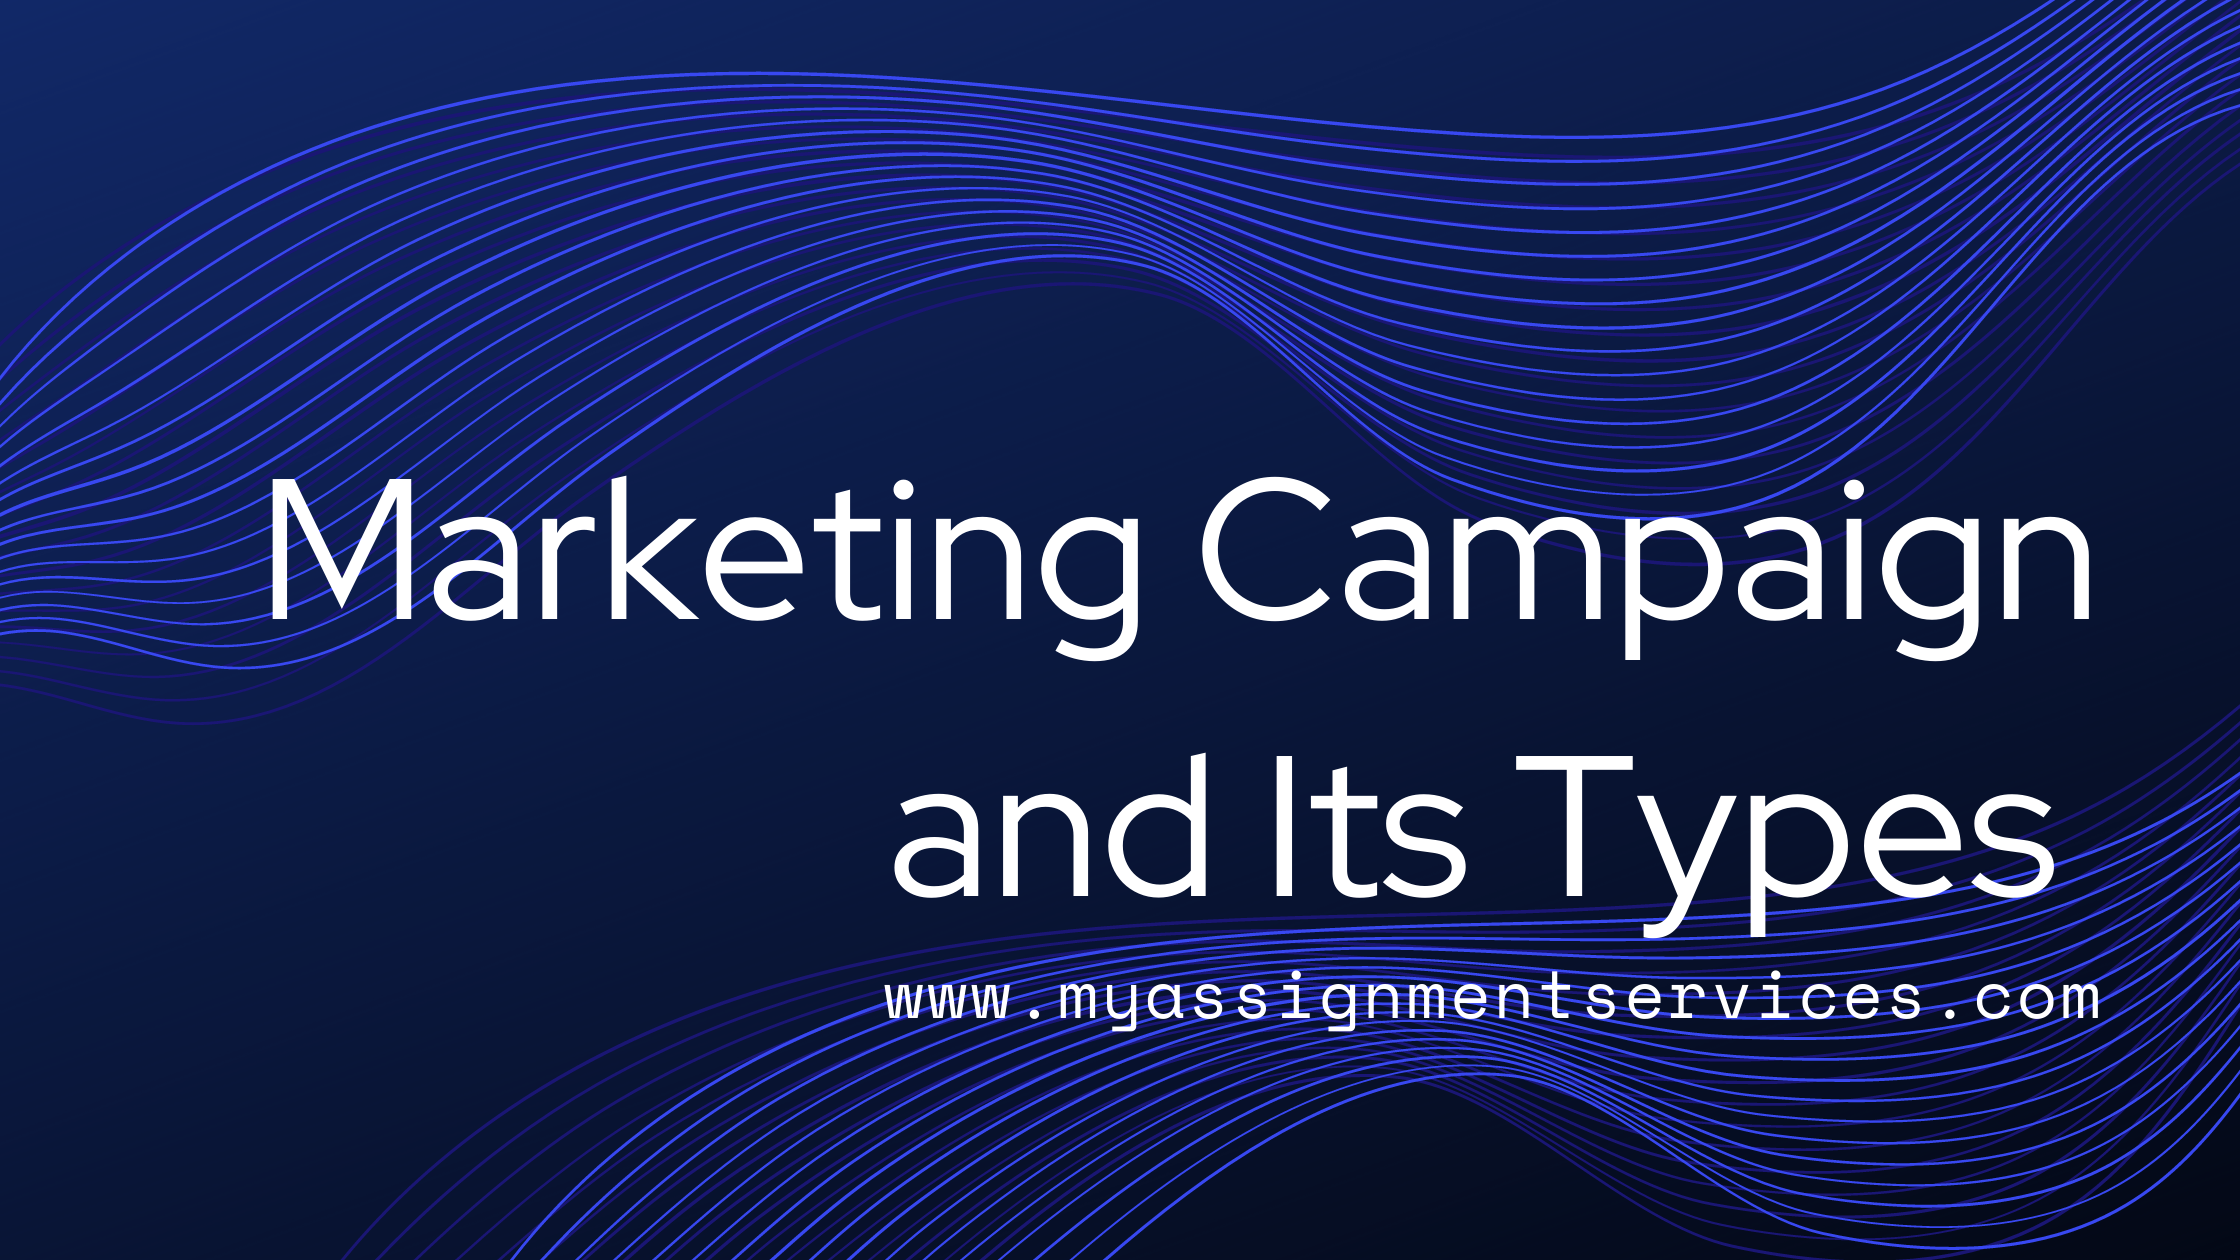 Marketing Campaign and Its Types